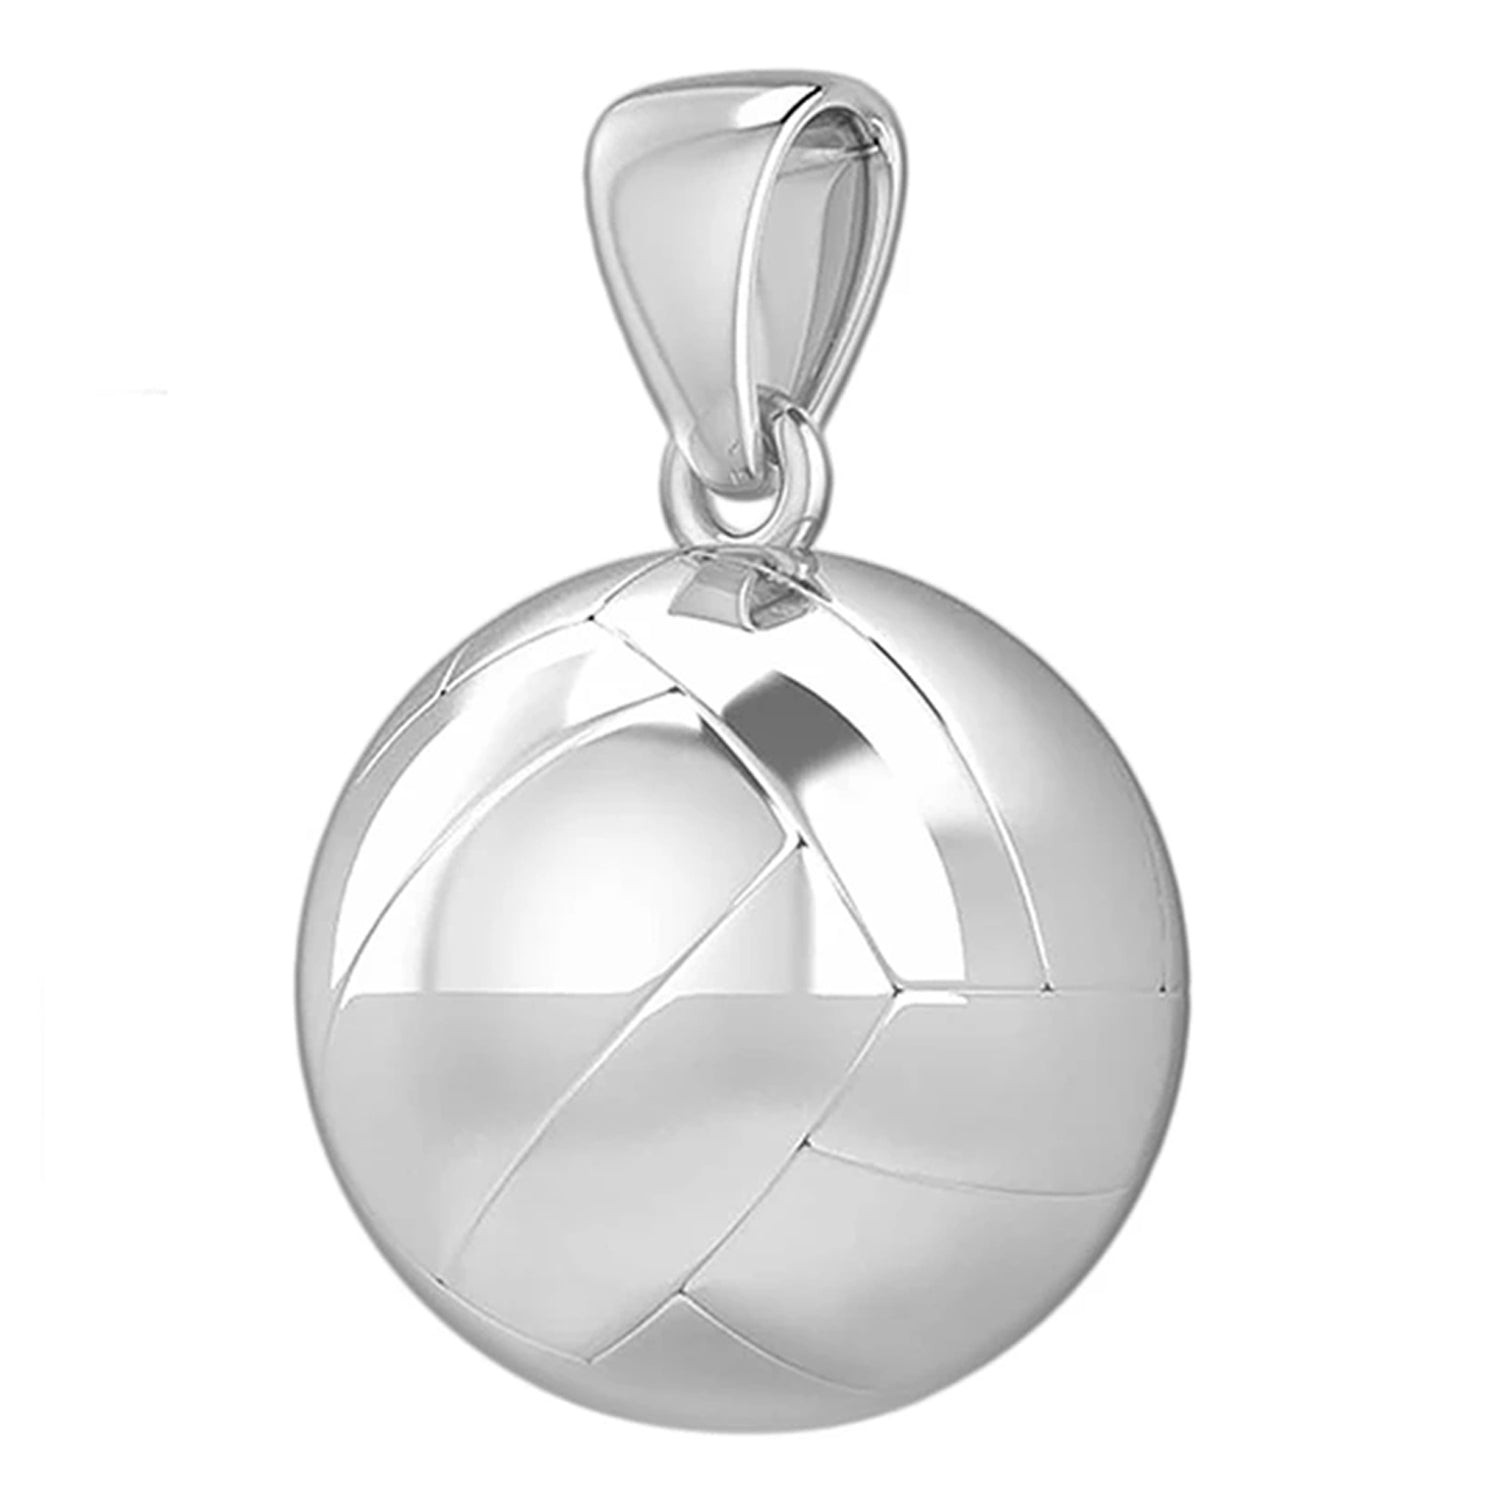 Small 925 Sterling Silver 3D Volley Ball Pendant Necklace, 13mm